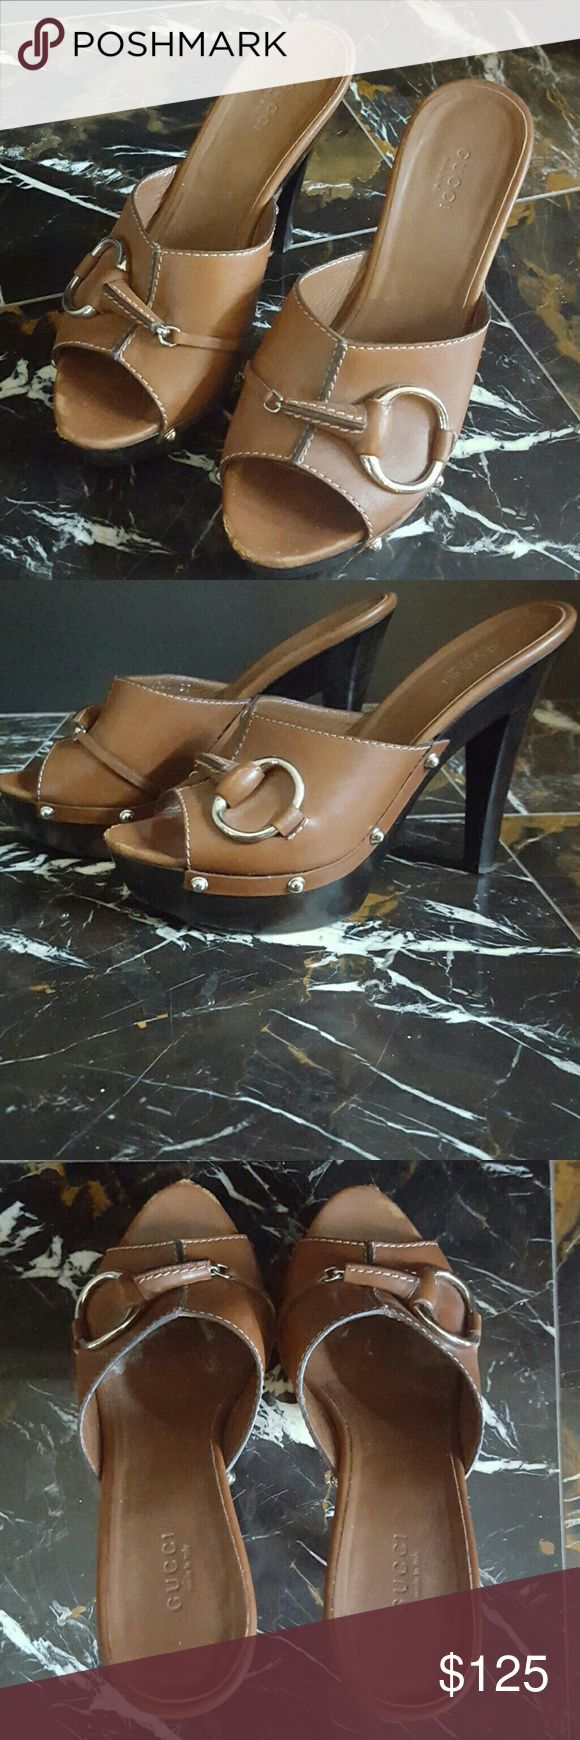 Gucci Mules Brown Leather Gucci Platform Mules. Leather Upper and Hardware. Purchased at Saks. Used. Very Comfortable. Gucci Shoes Mules & Clogs